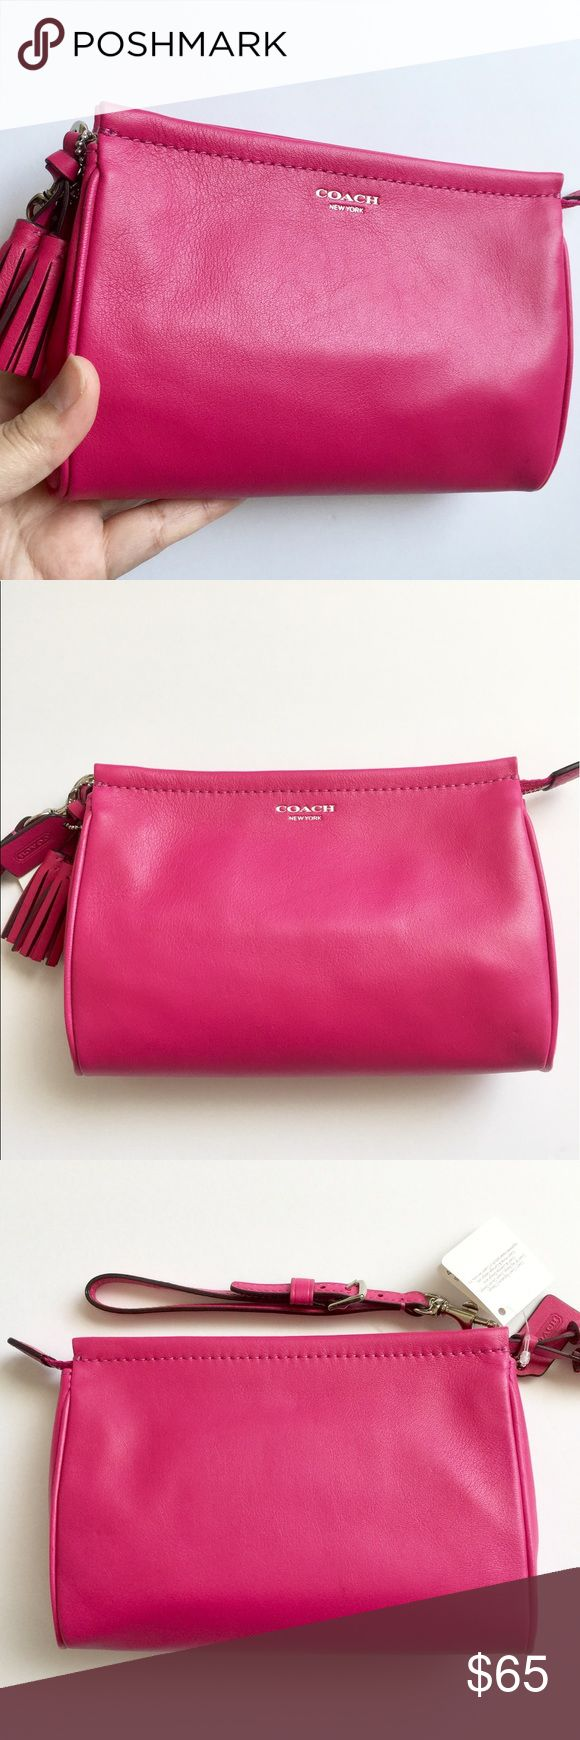 Coach Legacy leather large wristlet Coach Legacy leather large wristlet. Style# 48025, Silver/Fuchsia. Note: It is a soft leather with indentation on the back corner of wristlet, as seen in the last photo. Coach Bags